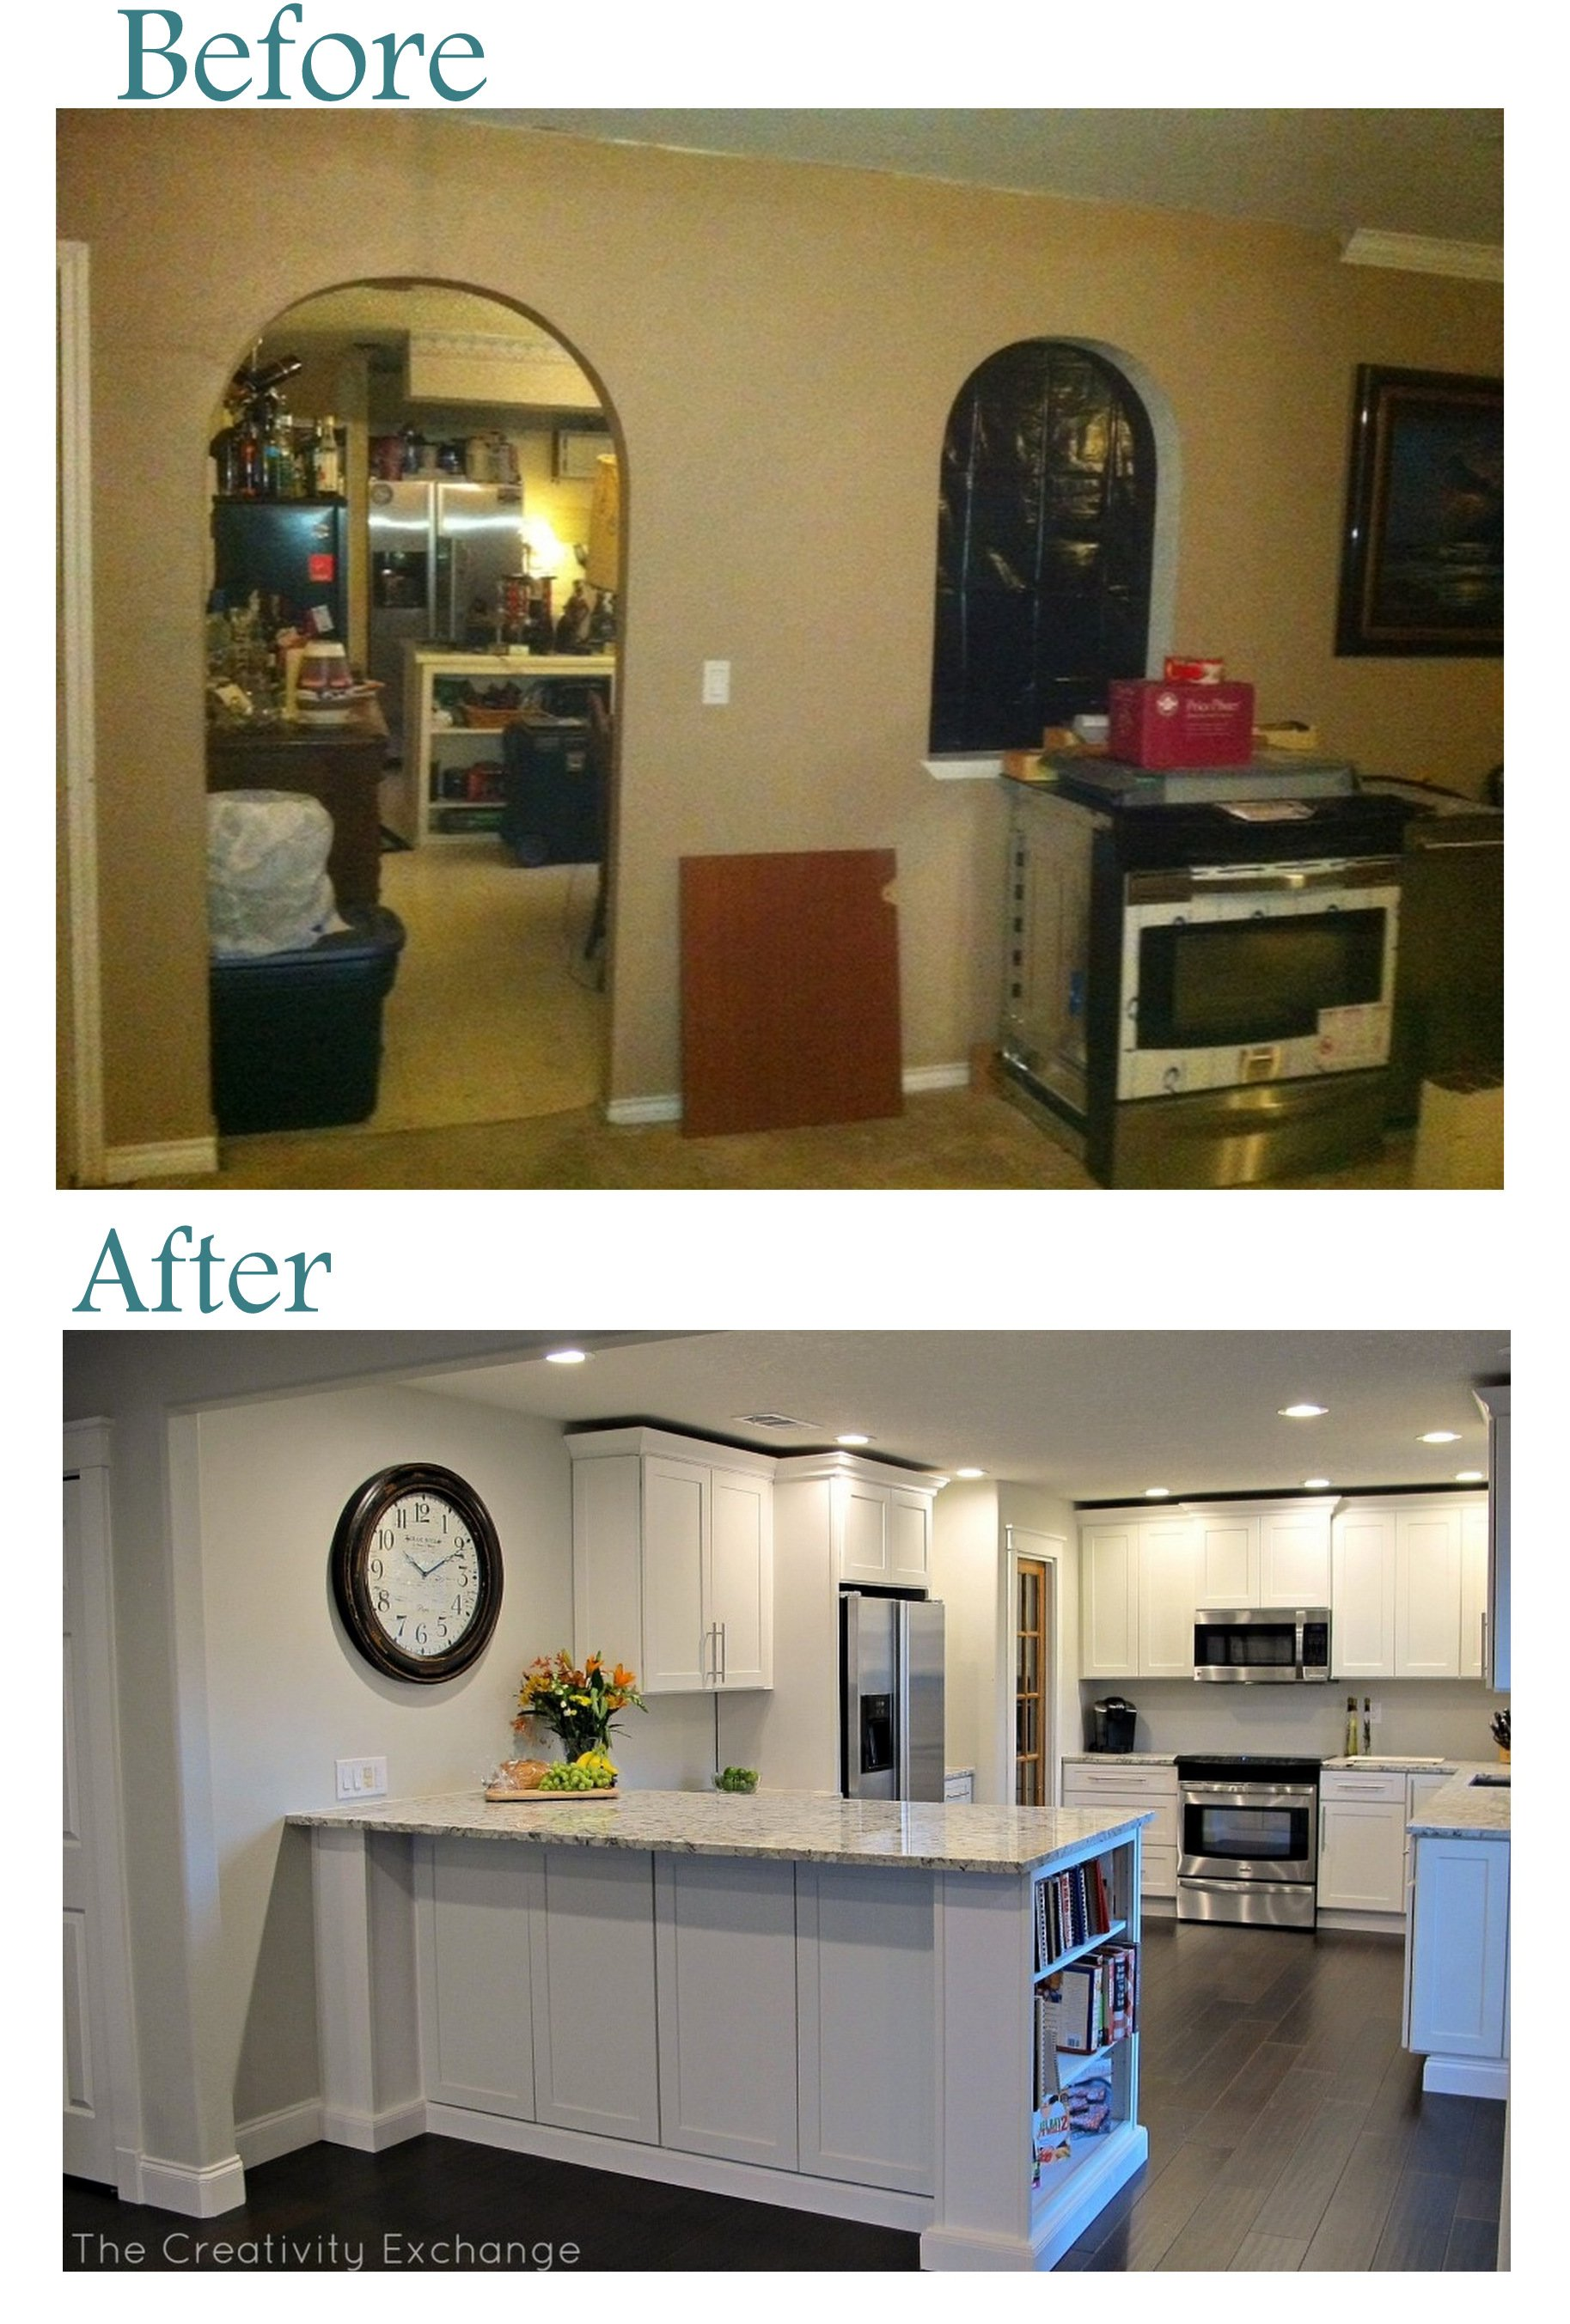 Small Kitchen Renovations Before And After cousin frank's amazing kitchen remodel {before & after}